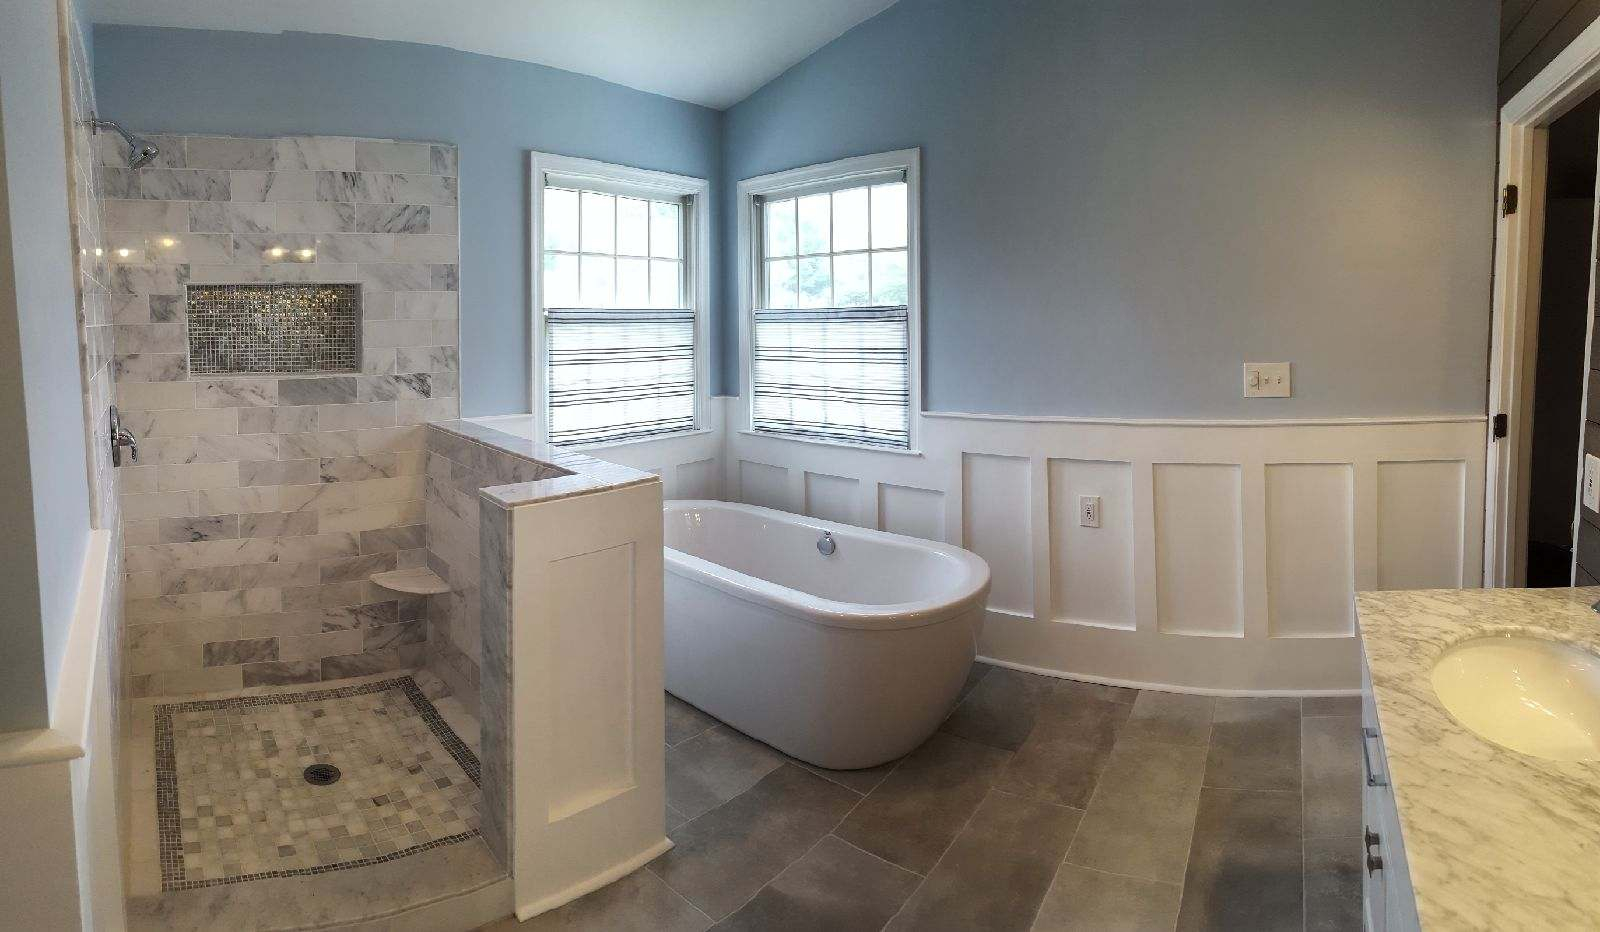 Home Remodeling Company - Bathroom remodeling anne arundel county